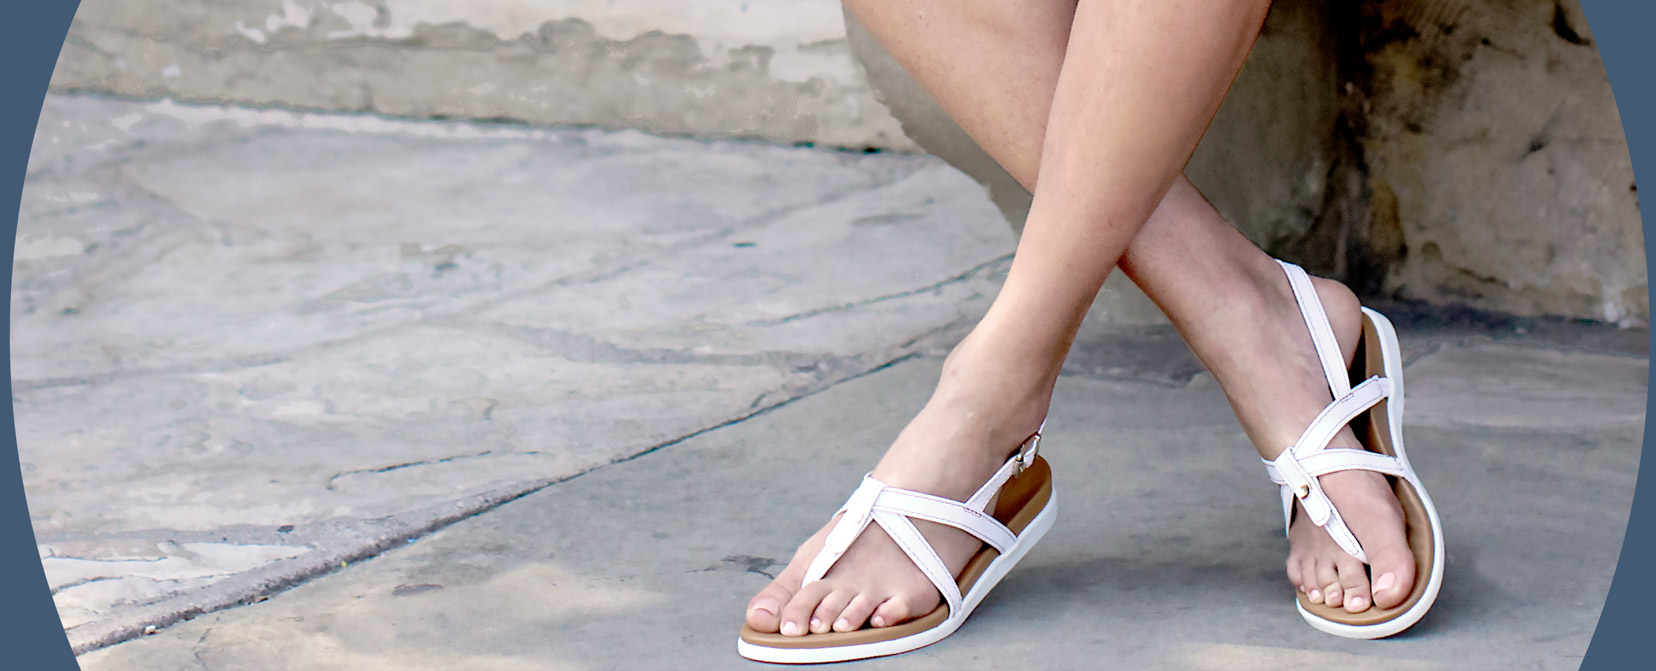 Complement Your Weekend Style with Soft Colors